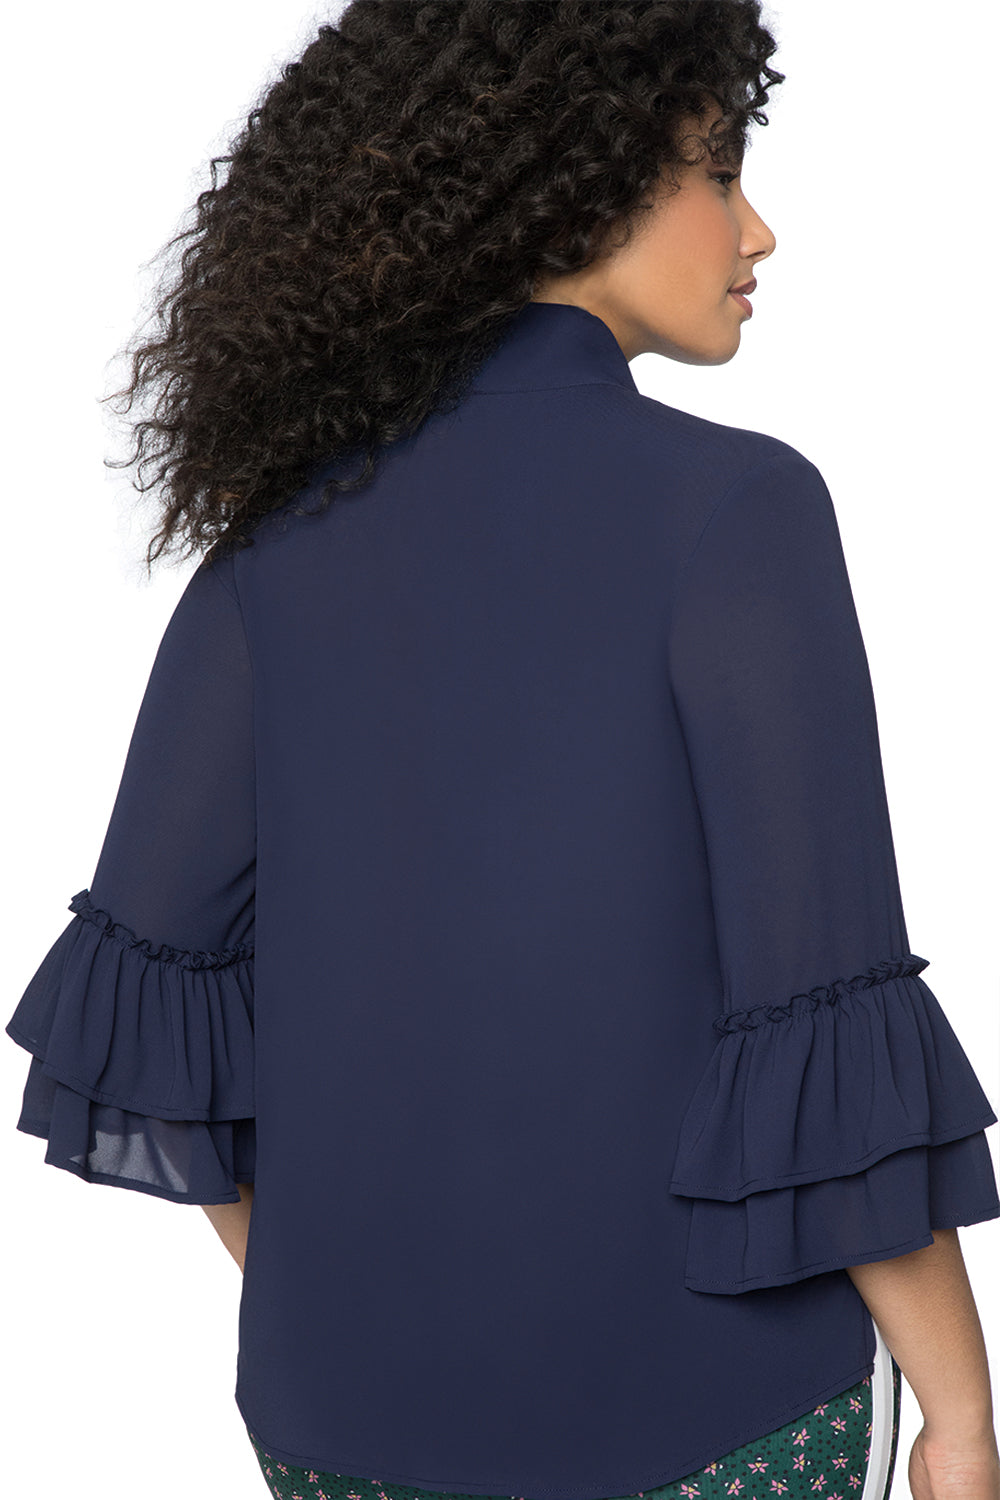 Navy Blue Tie Neck Ruffle Sleeved Plus Size Blouse LAVELIQ